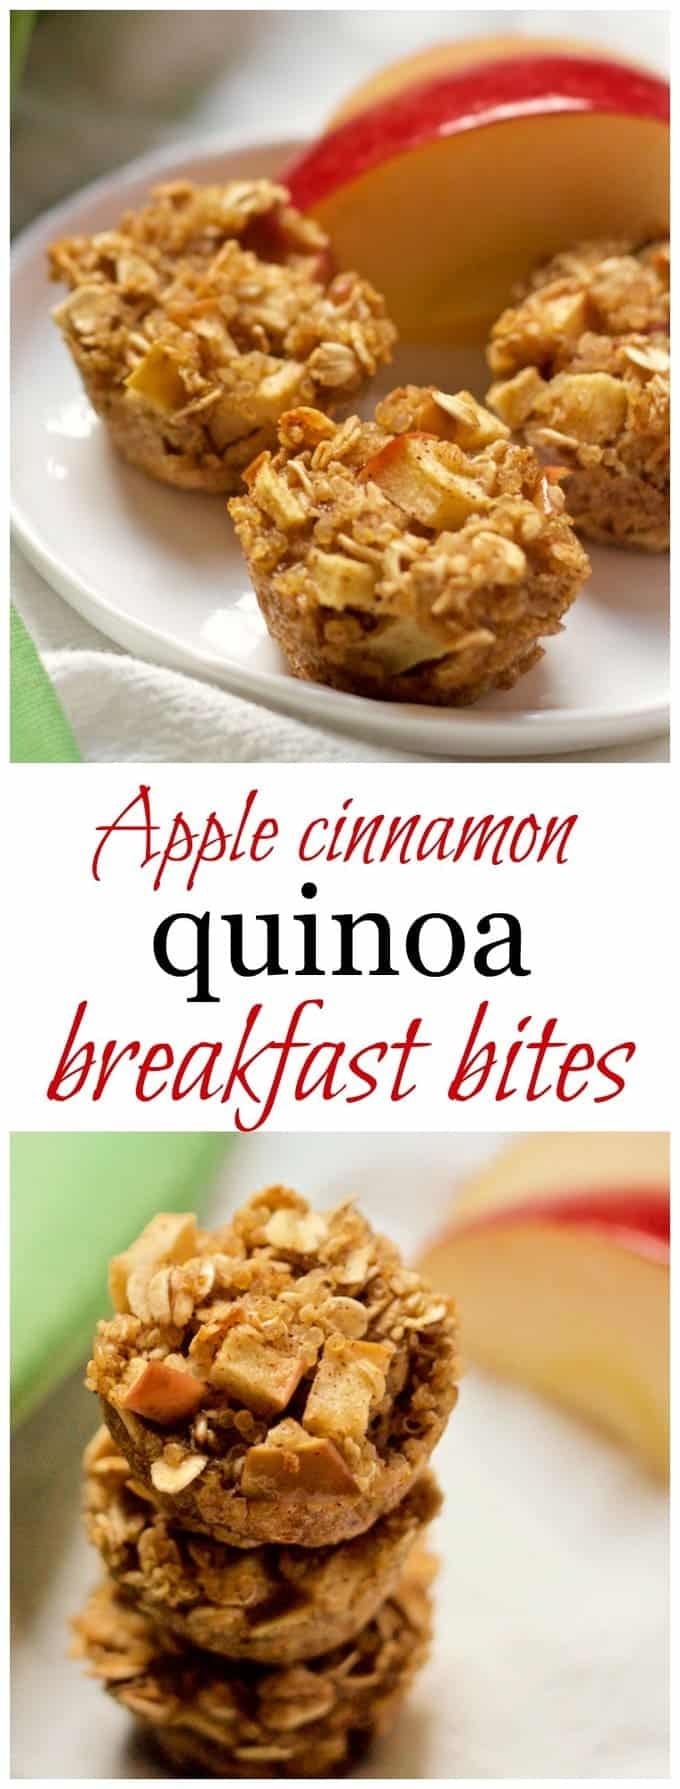 Wholesome mini muffins with quinoa, oats and apples, naturally sweetened with maple syrup.